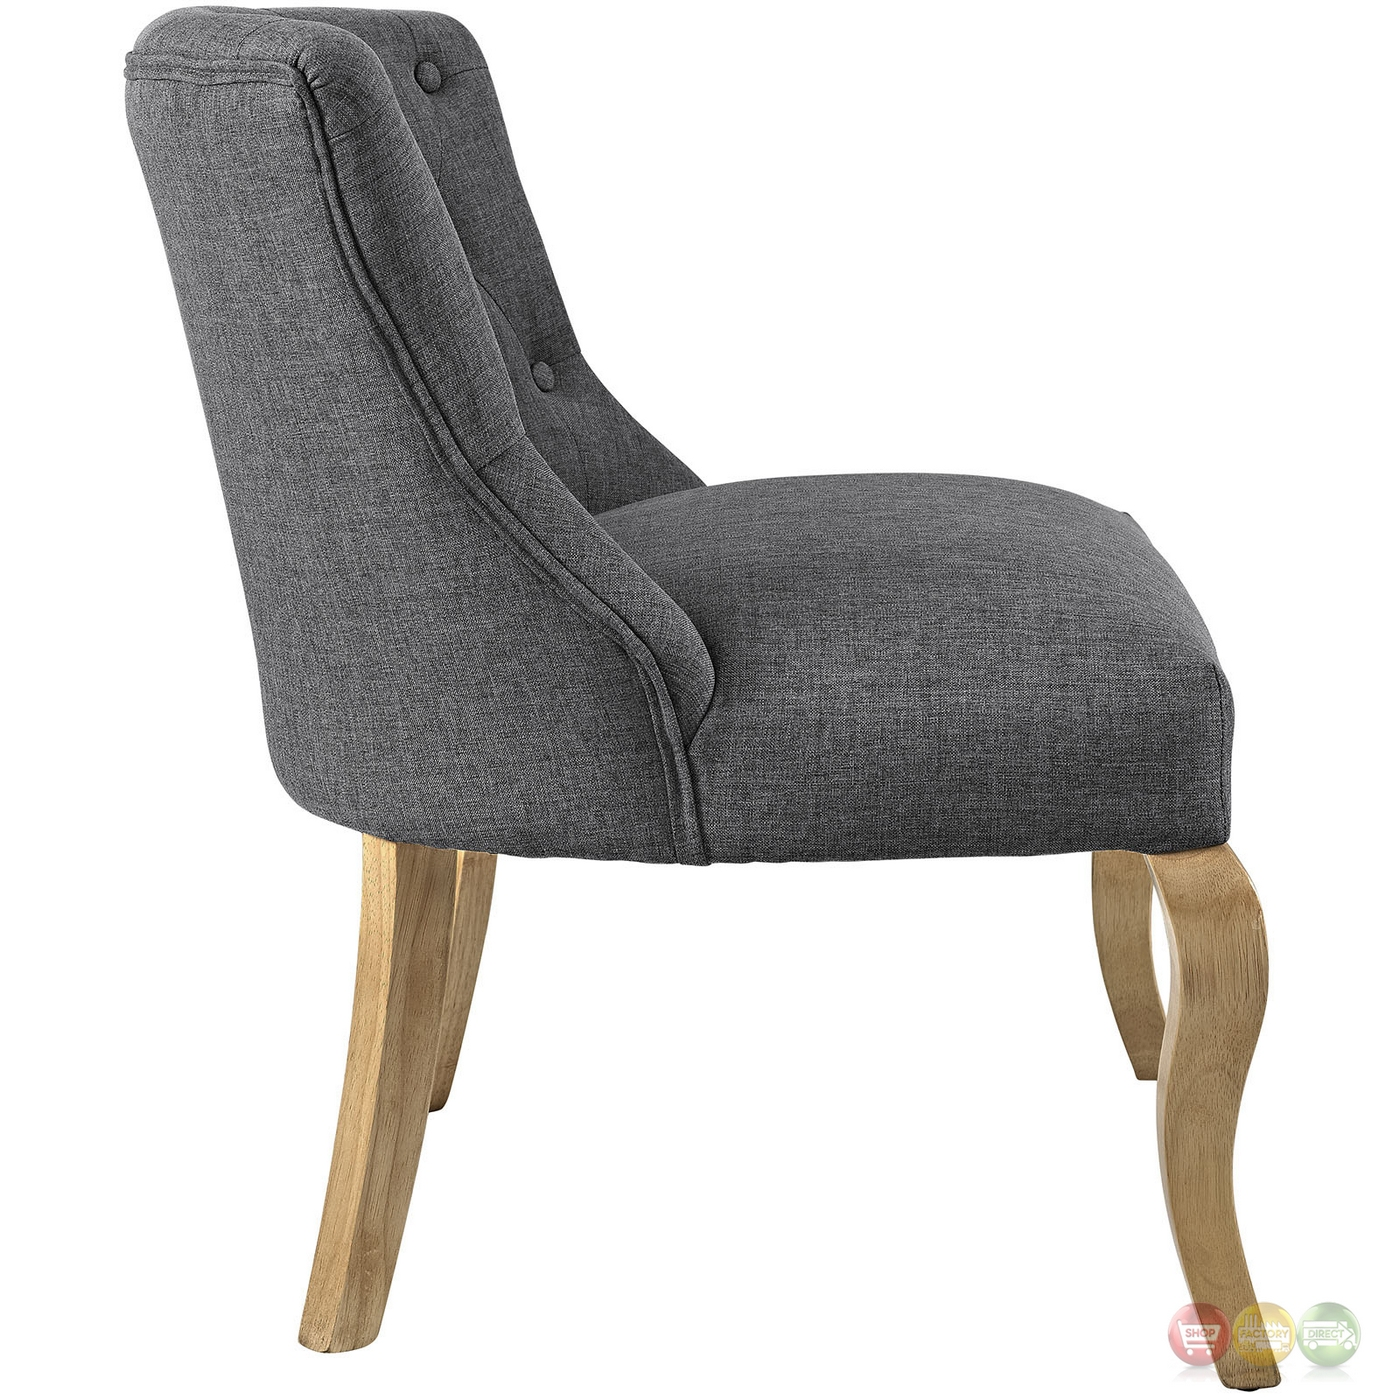 grey upholstered chair white legs set of 6 dining chairs royal modern french inspired accent with